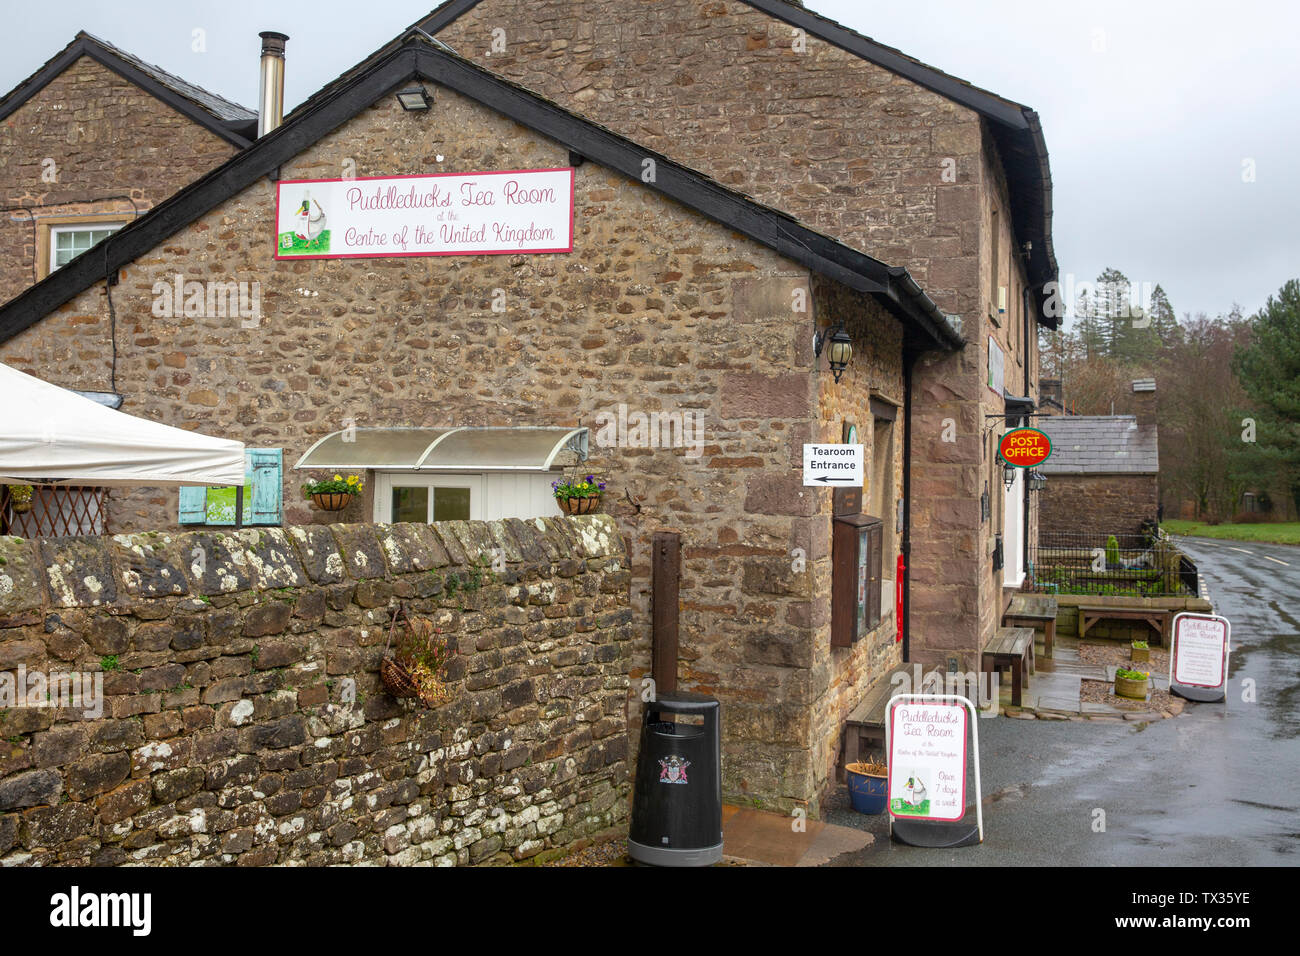 Puddleducks cafe and tea rooms at Dunsop bridge, the geographical centre of the united kingdom,Forest of Bowland,Lancashire,England Stock Photo